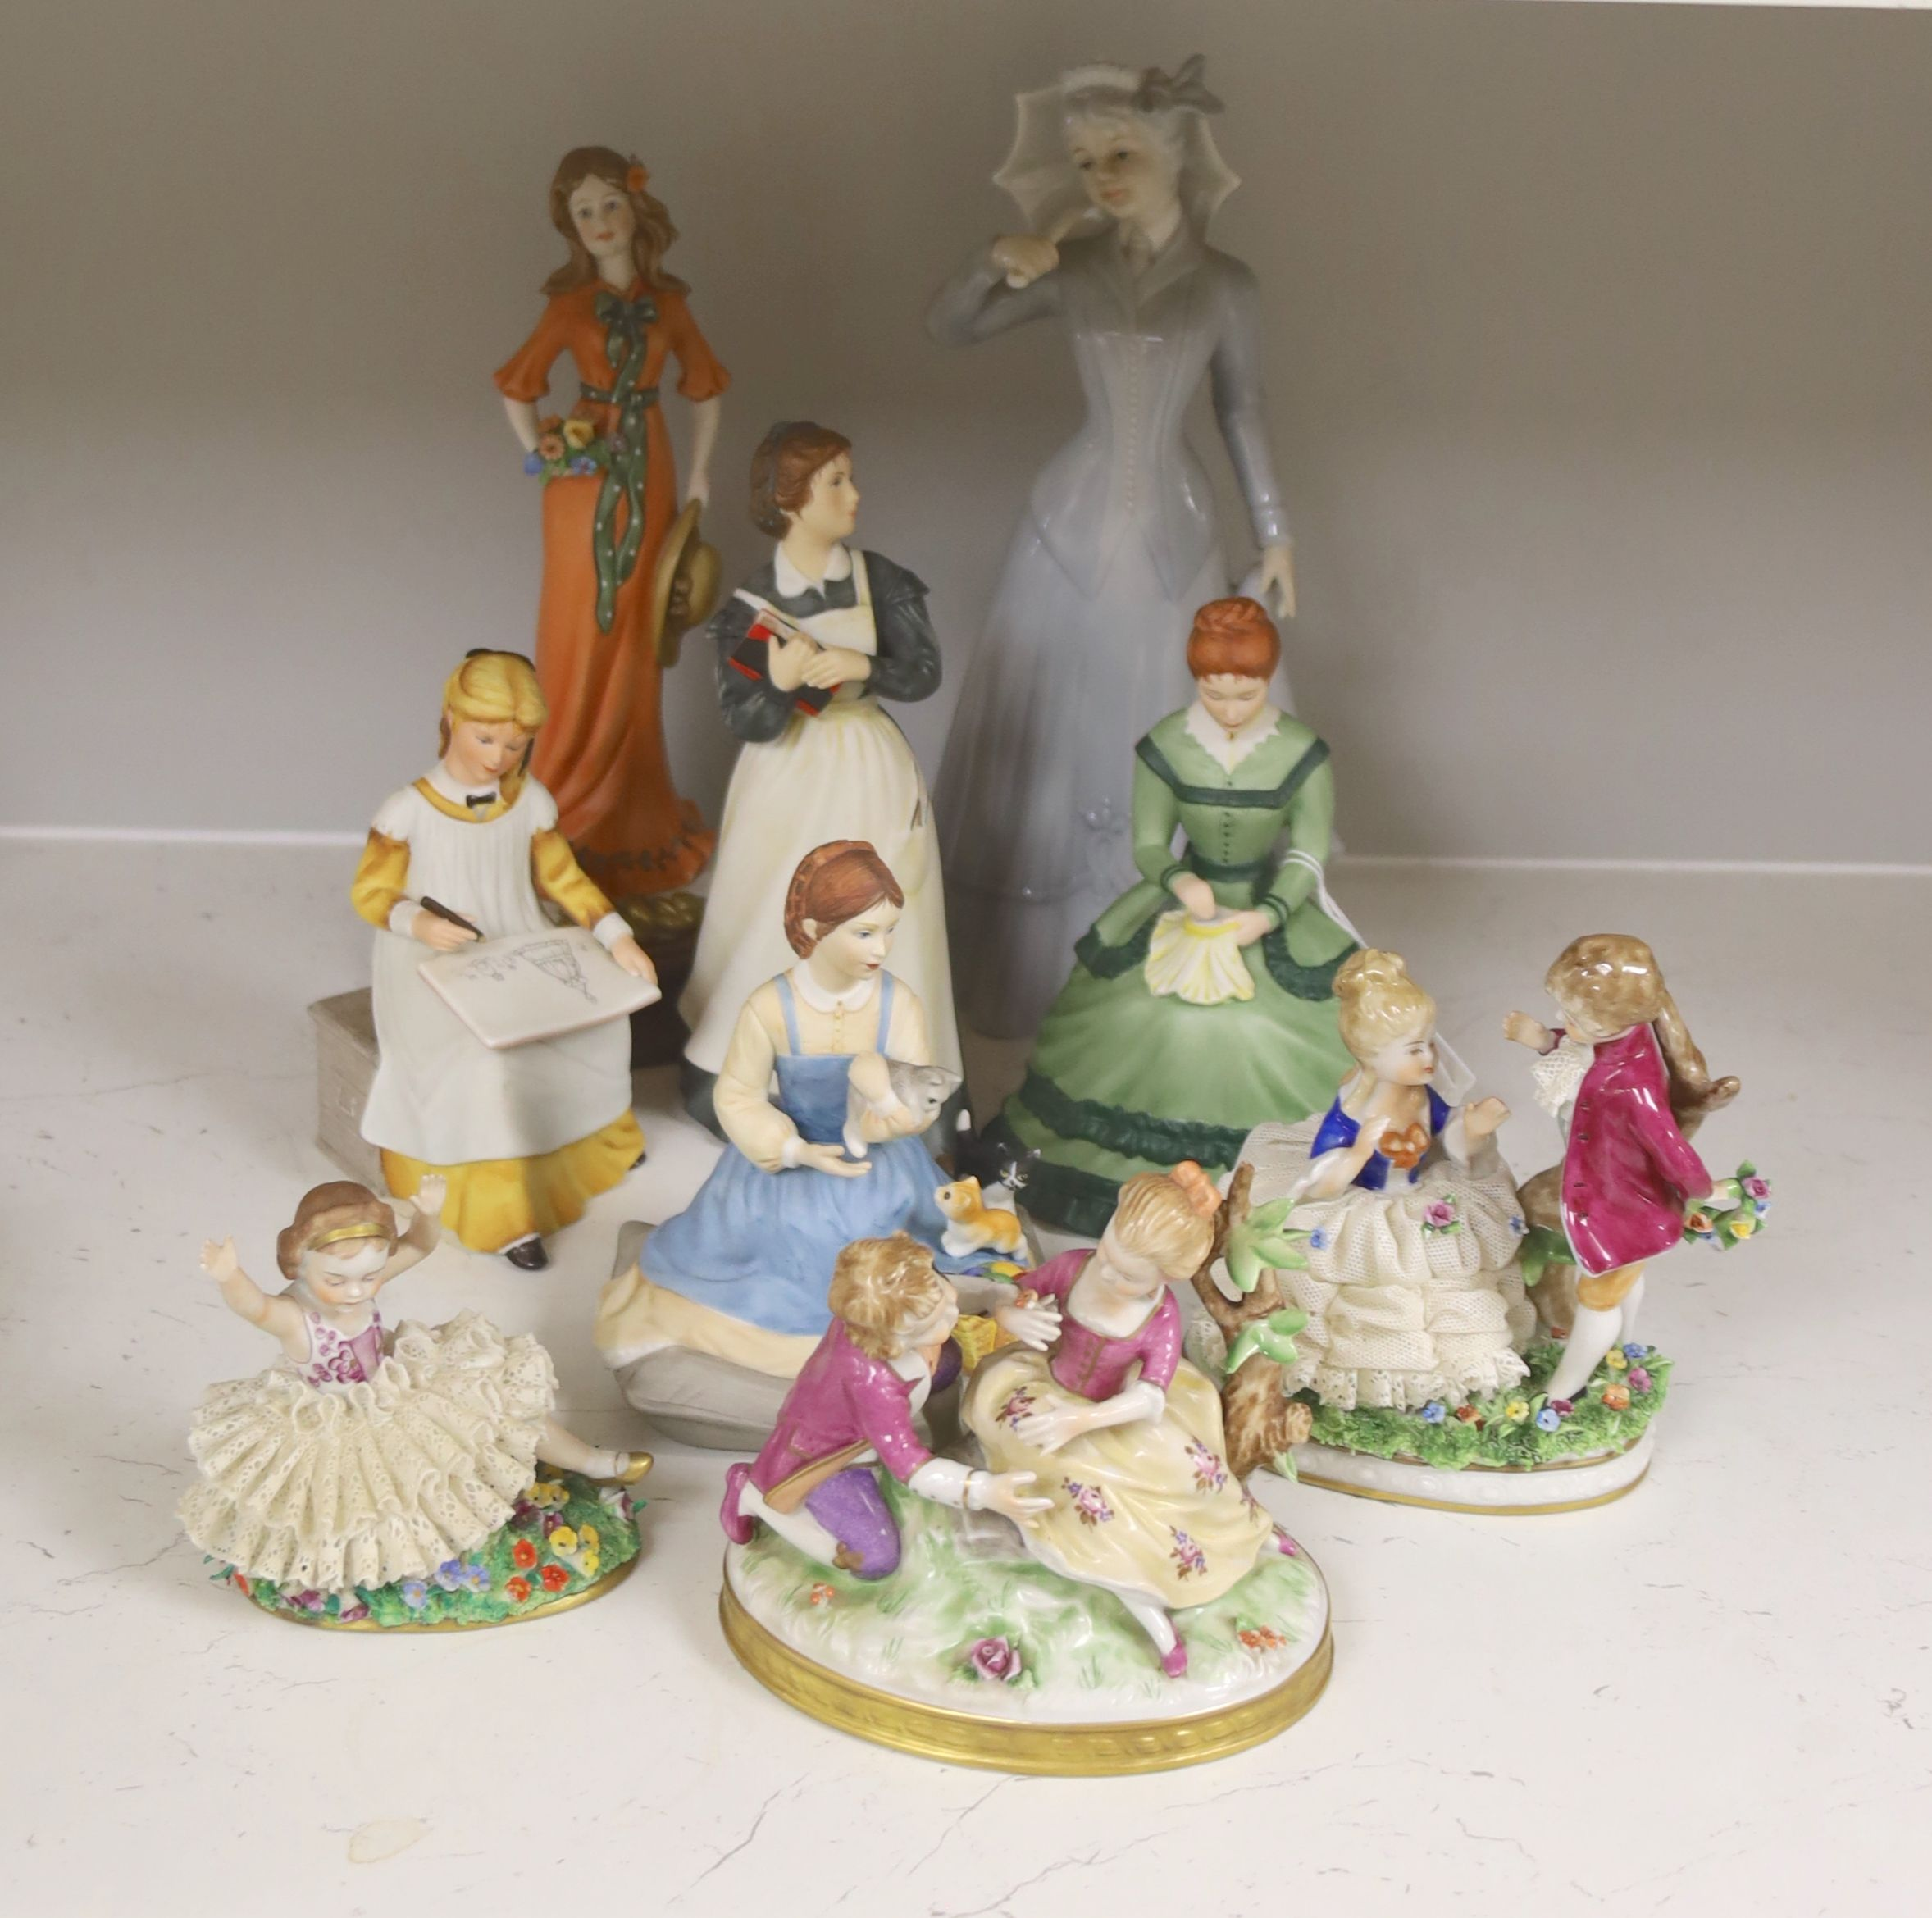 A German porcelain group of two children by a tree stump, on rocky base, two 'crinoline' figures